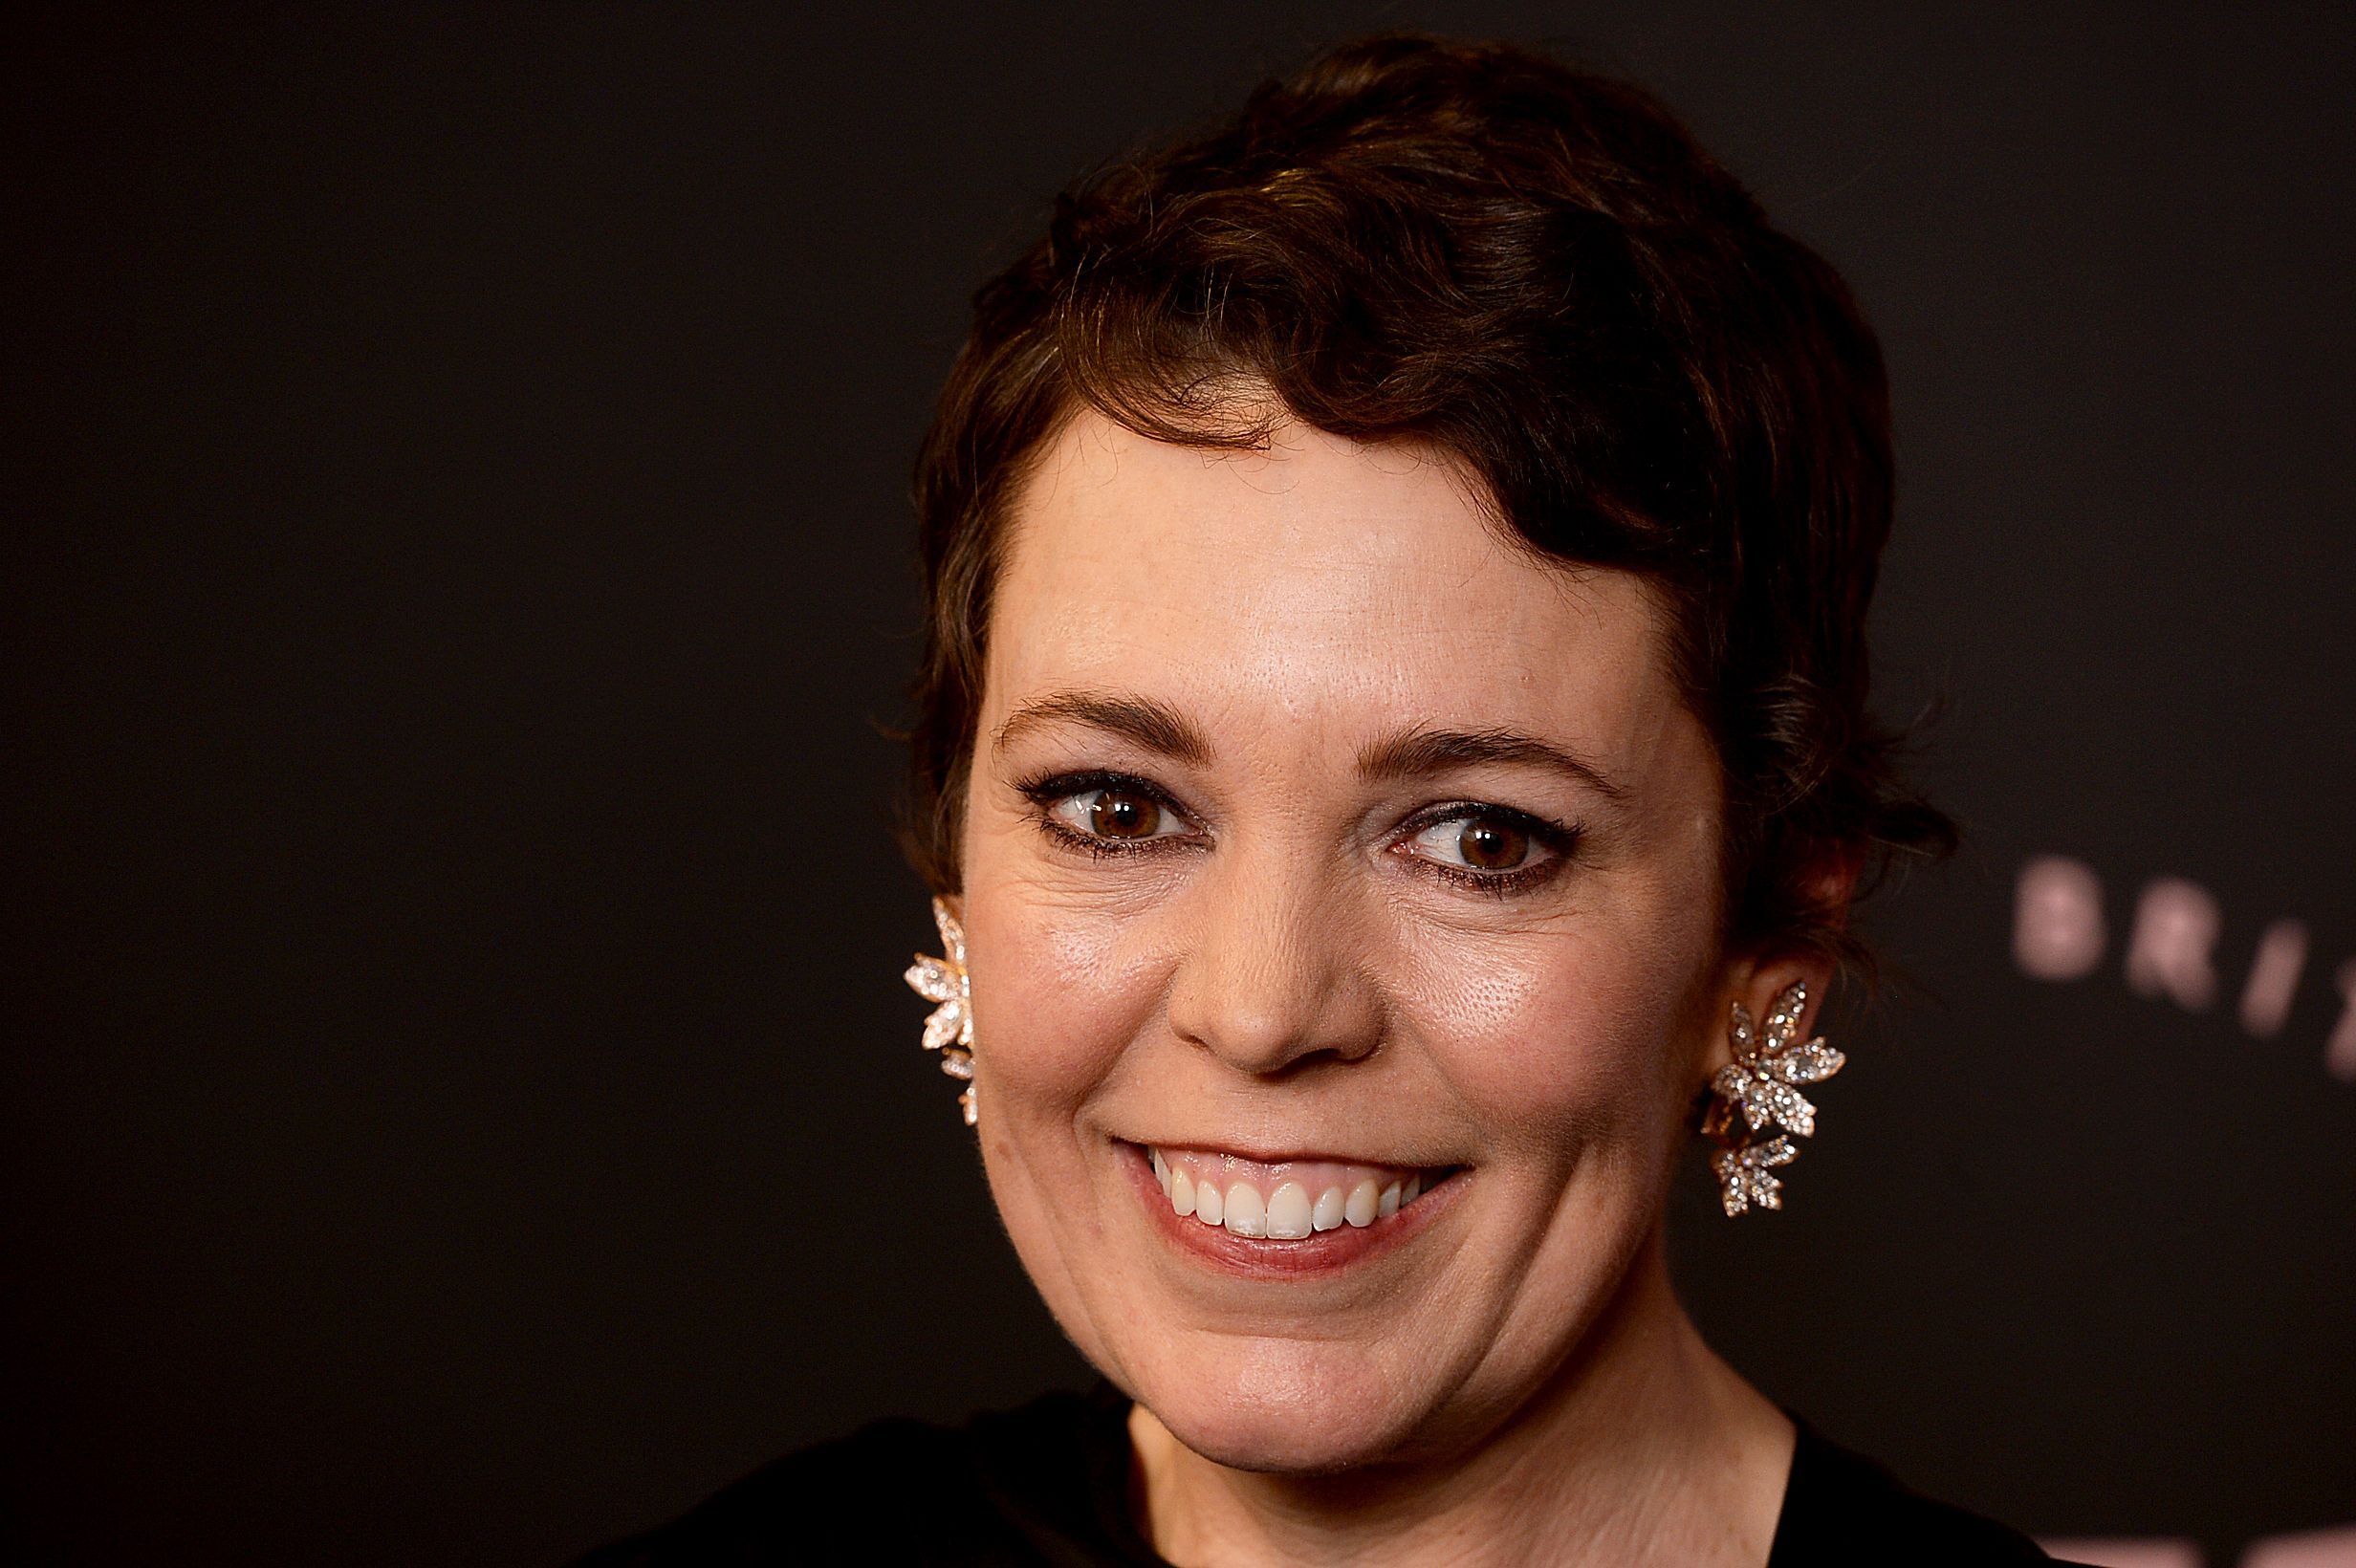 Prince William told Olivia Colman he wasn't exactly a fan of The Crown